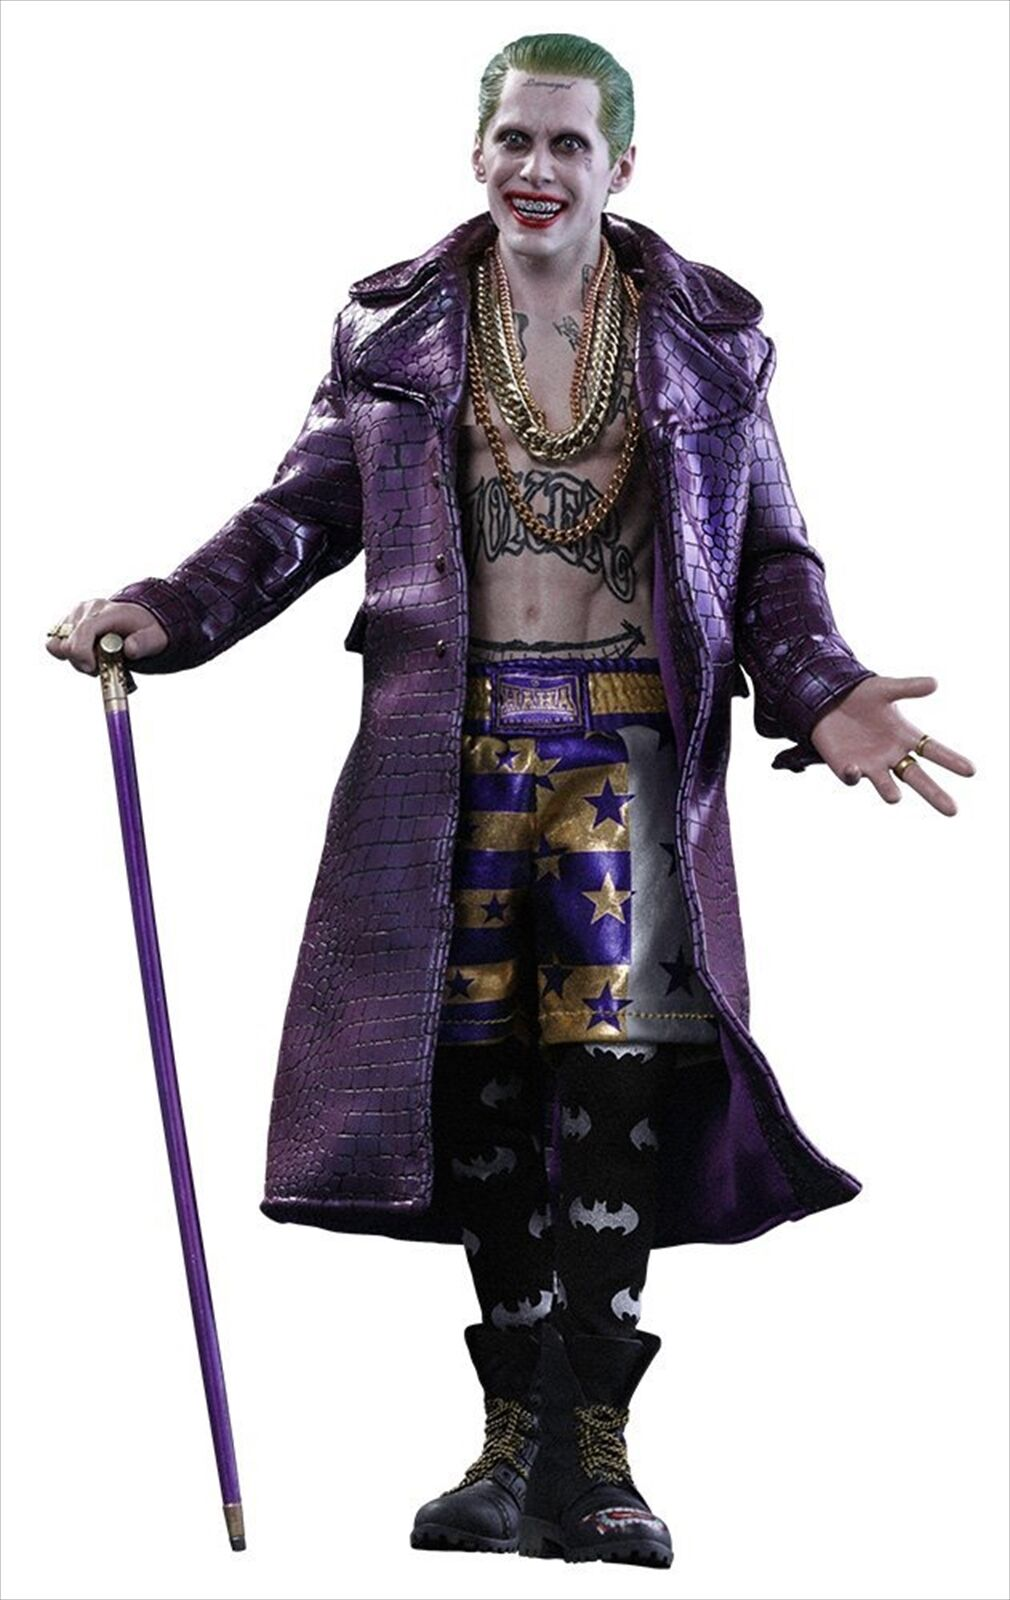 Movie Masterpiece Suicide Squad The Joker viola Coat Ver.  1 6 azione cifra  negozio di vendita outlet